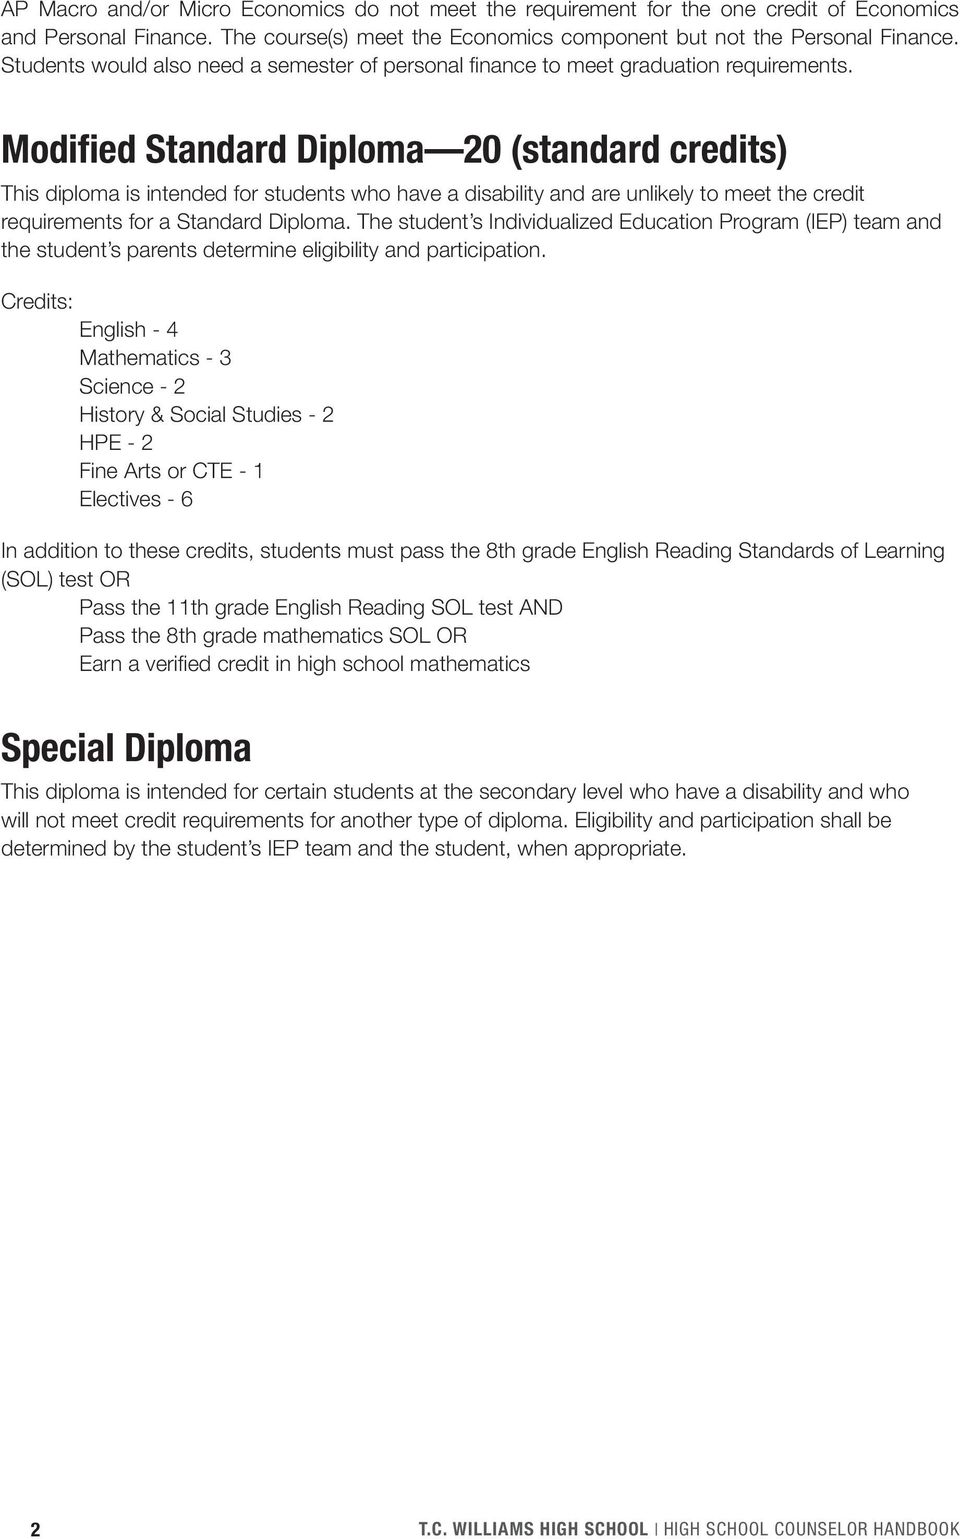 Modified Standard Diploma 20 (standard credits) This diploma is intended for students who have a disability and are unlikely to meet the credit requirements for a Standard Diploma.